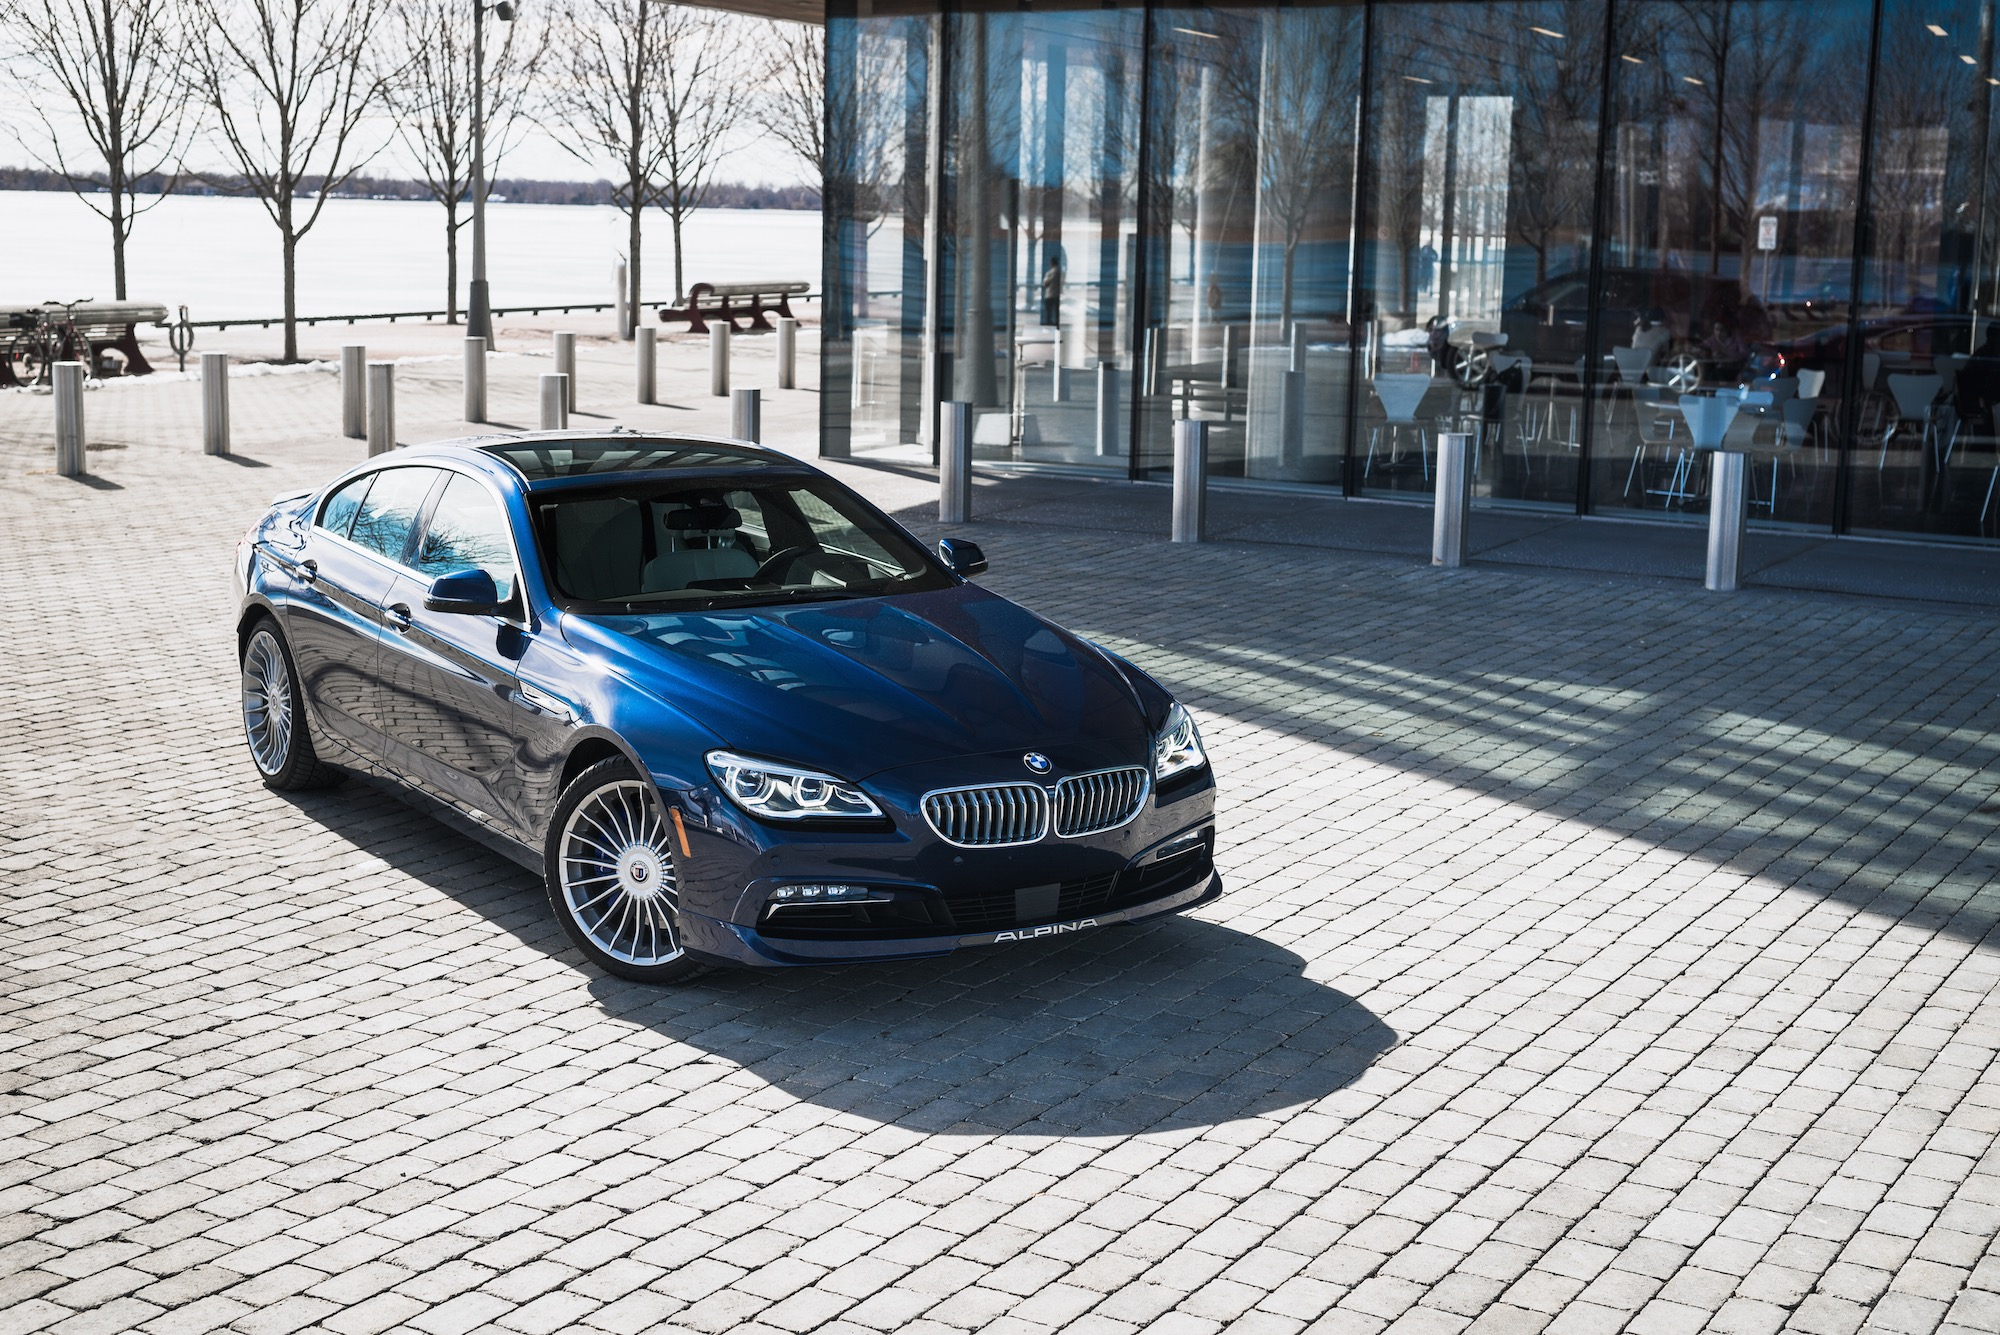 Blue Alpina B6 Gran Coupe Xdrive